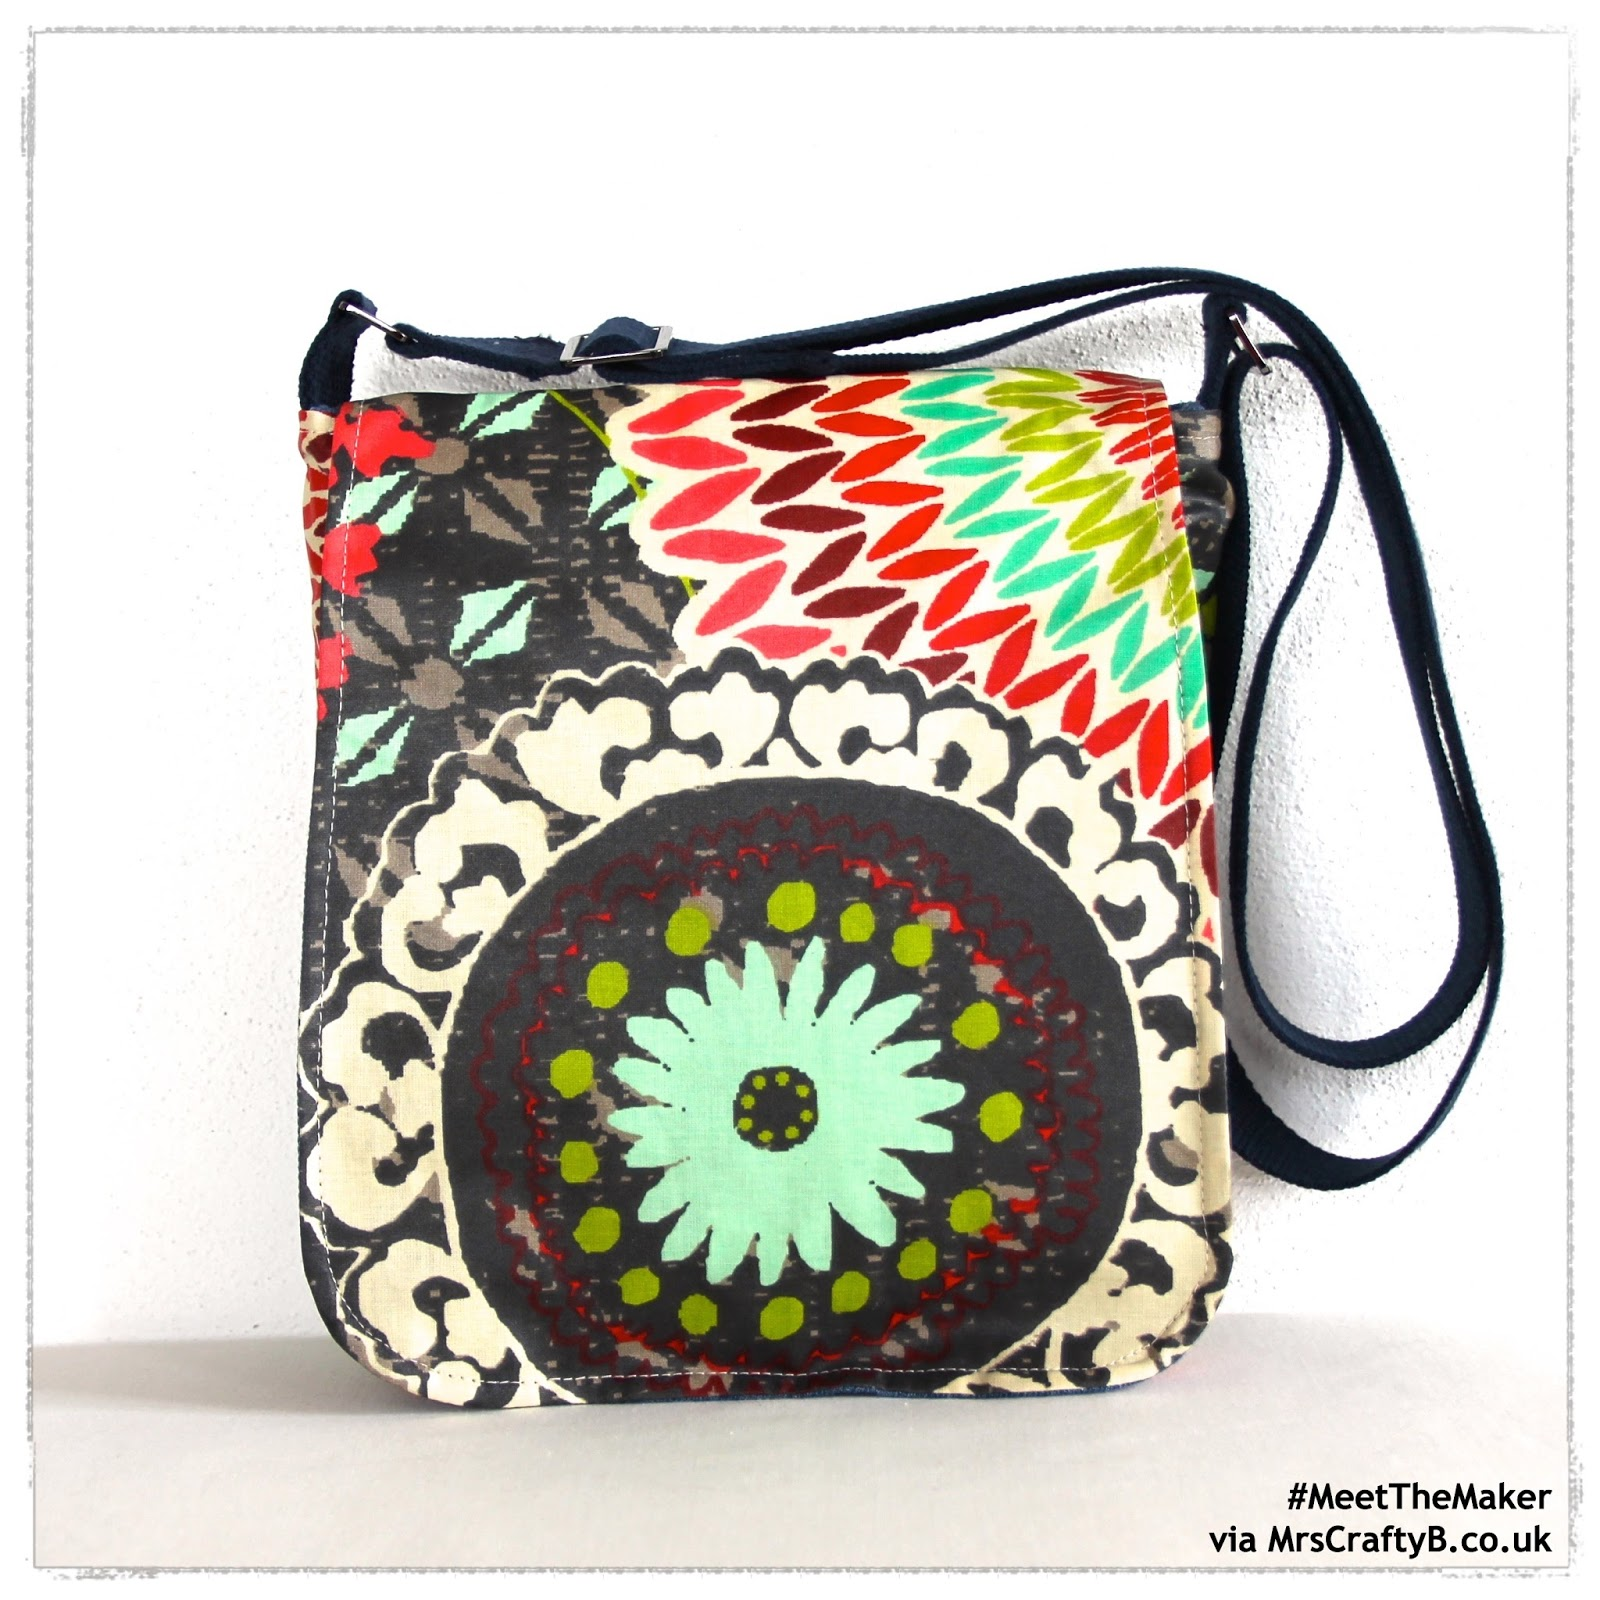 Today We Are Chatting With Sallyann Who Creates Handmade Bags Just Like This One